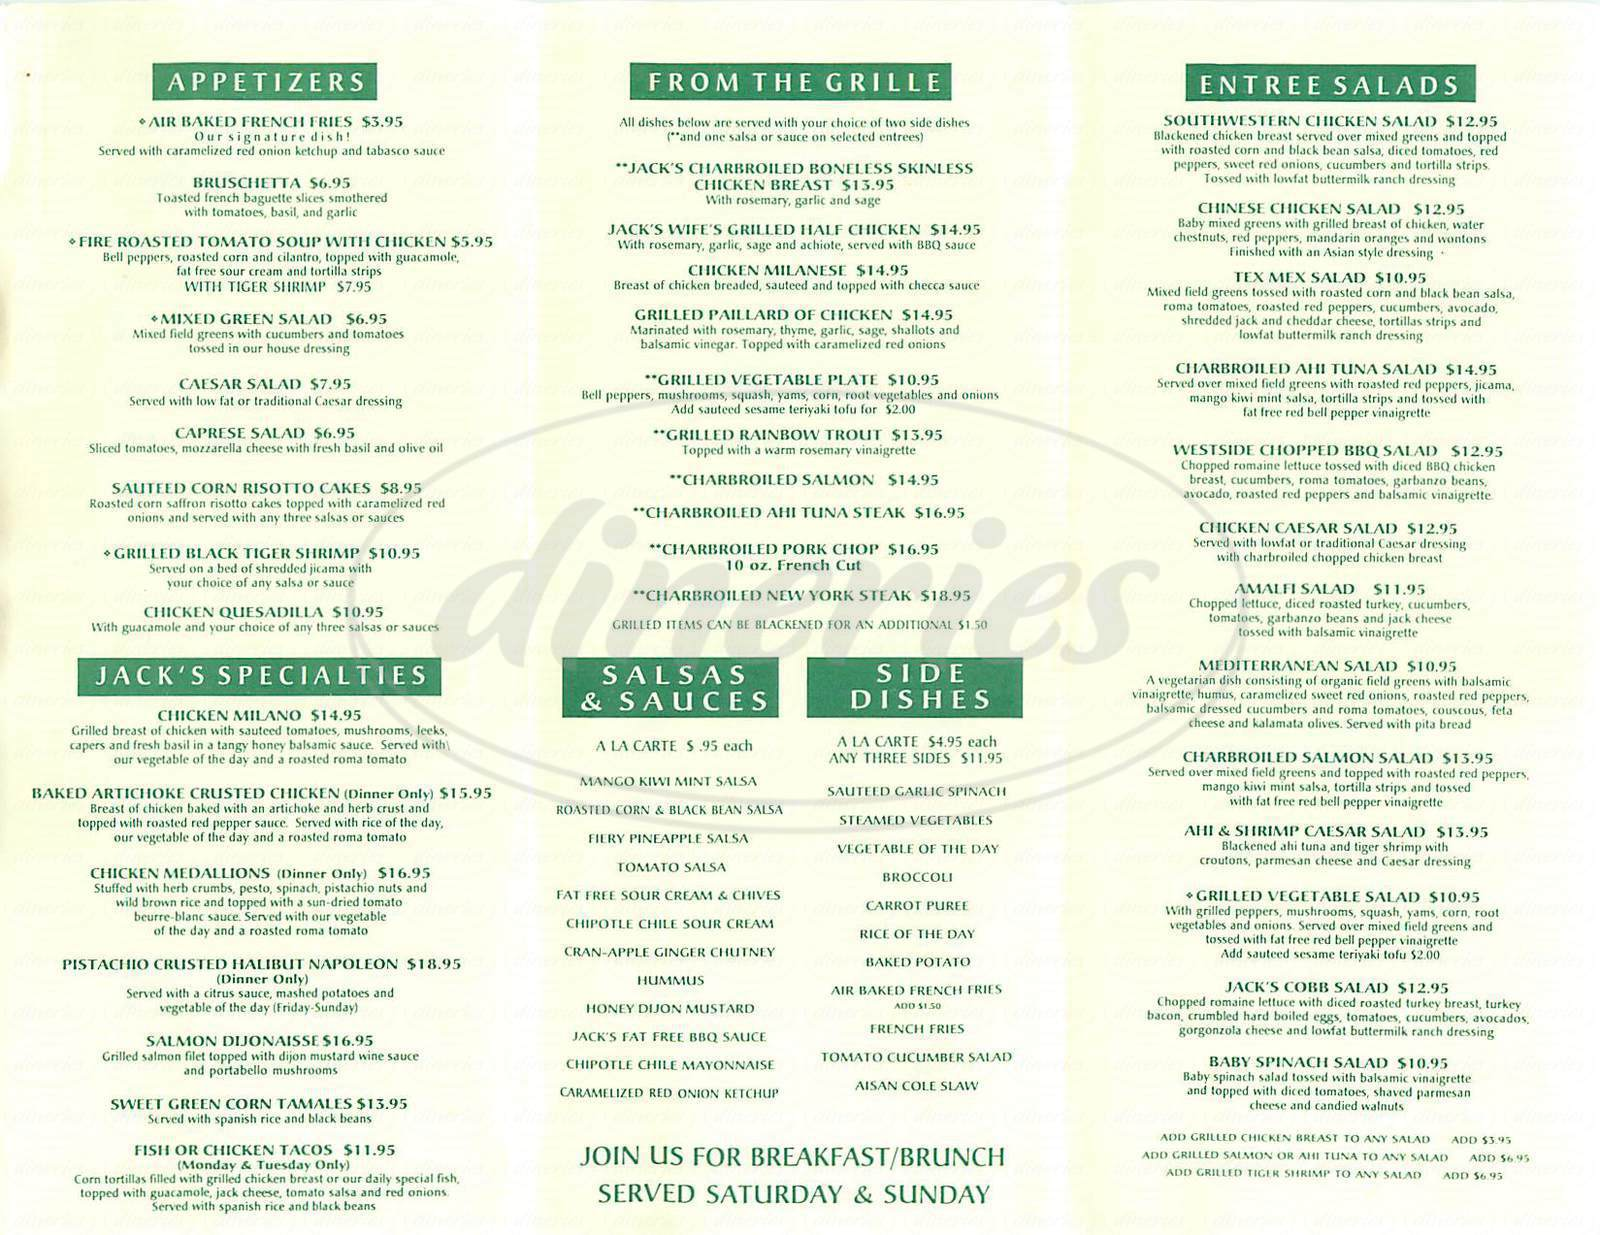 menu for Jack Sprats Grille